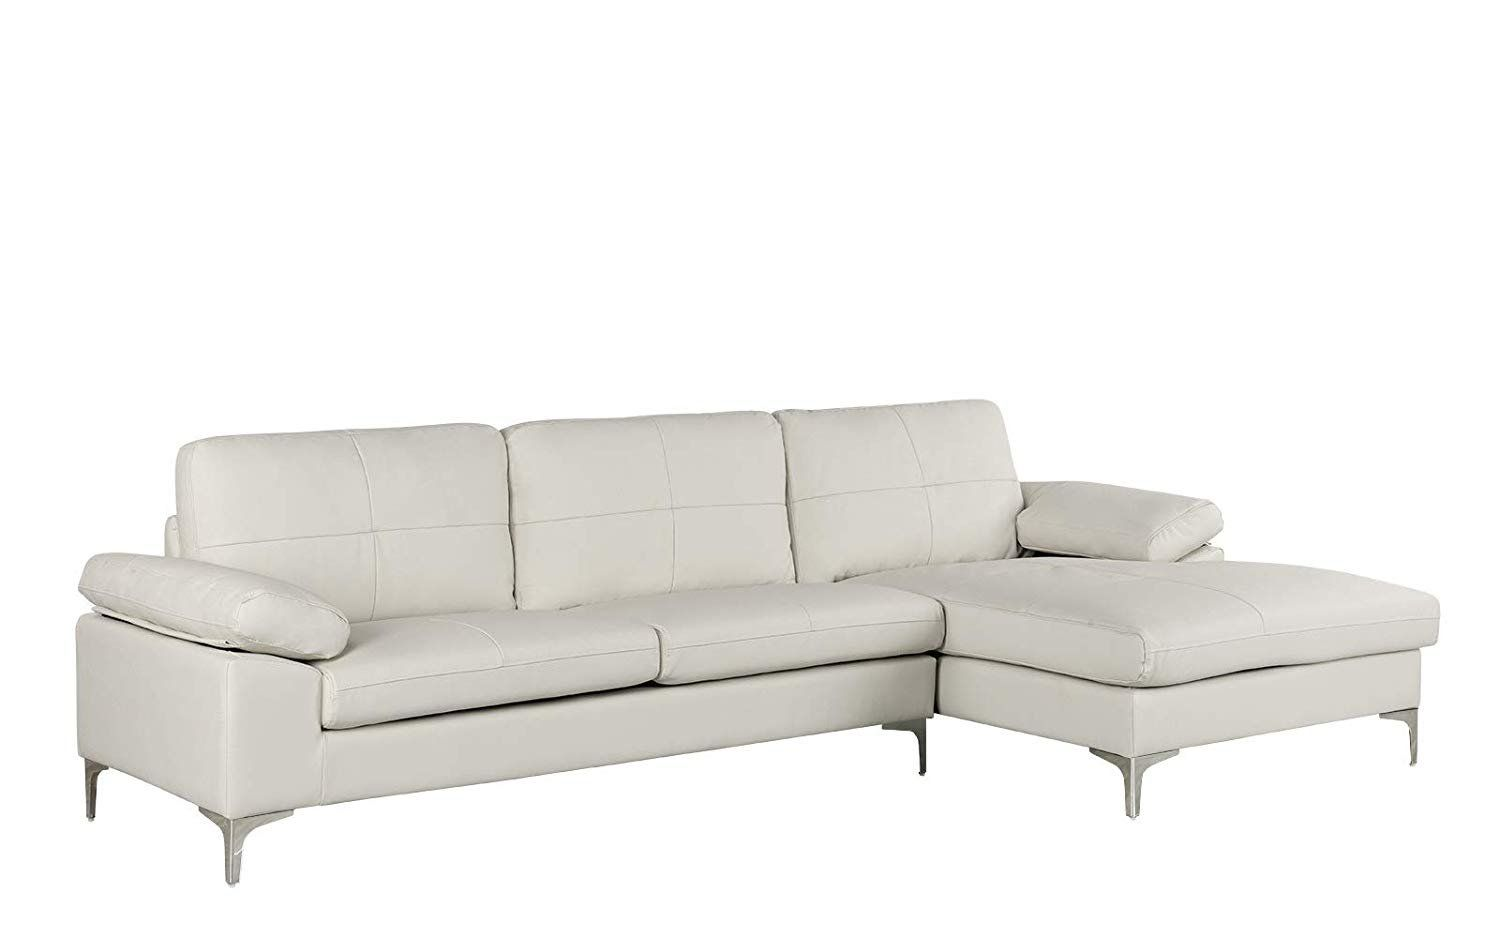 White L Shaped Sofa In 2020 Sectional Sofa With Chaise Couch With Chaise White Sectional Sofa